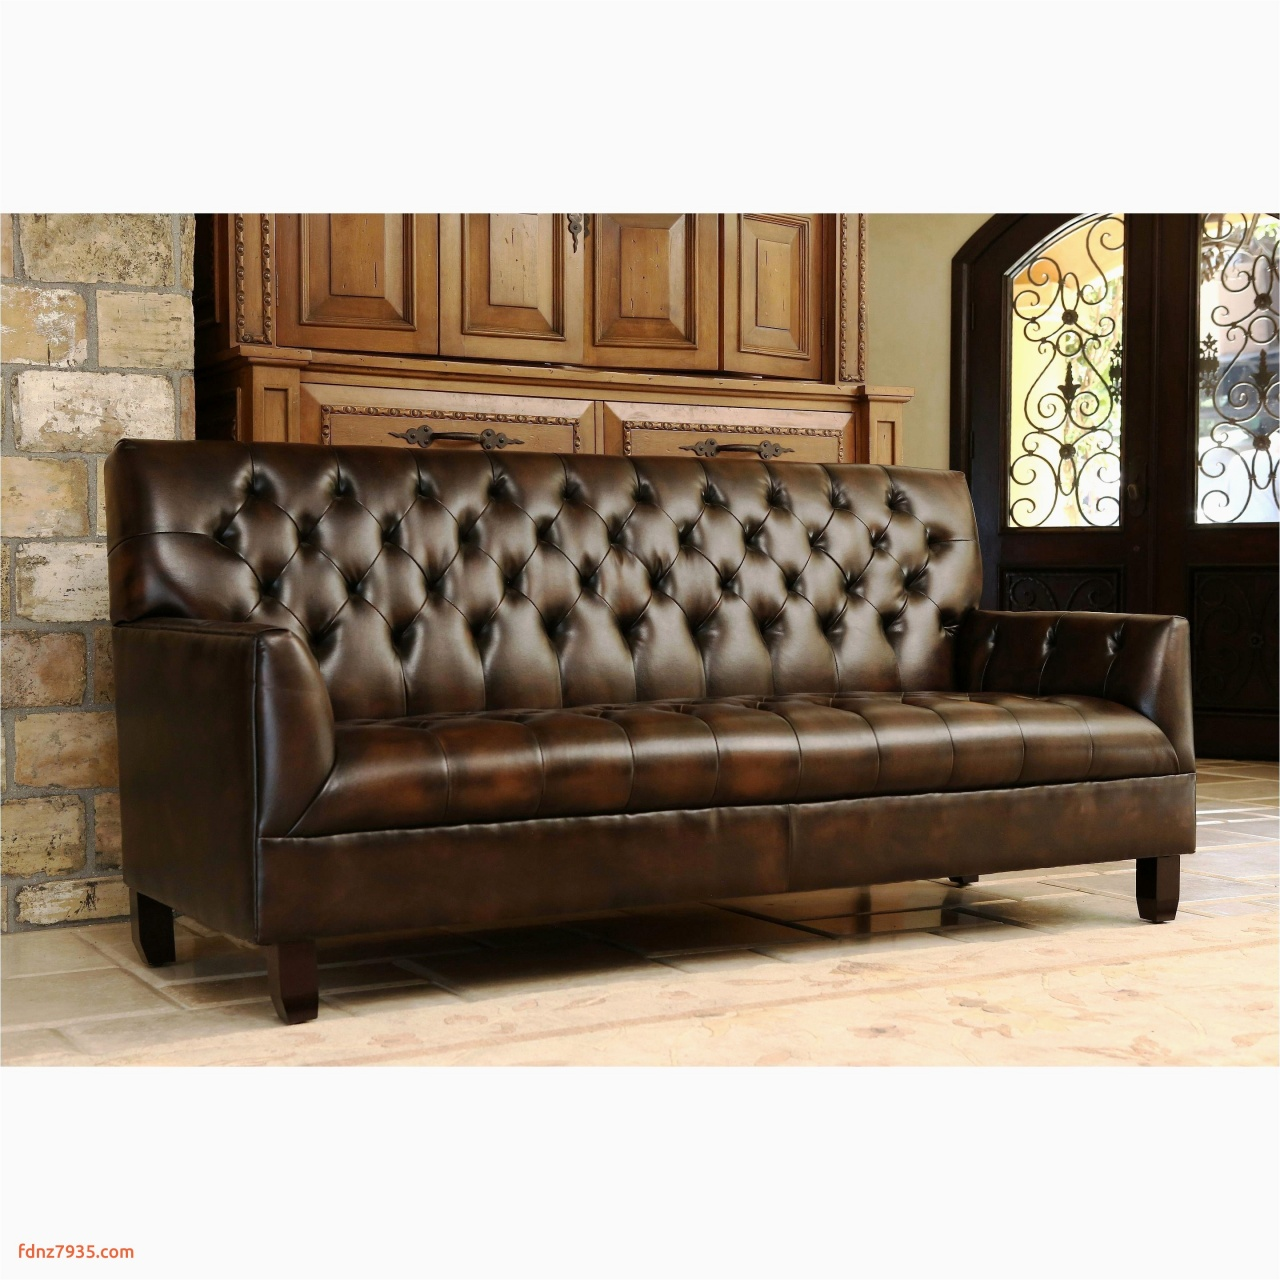 difference between sofa and loveseat real leather sofa and loveseat fresh sofa design from difference between sofa and loveseat